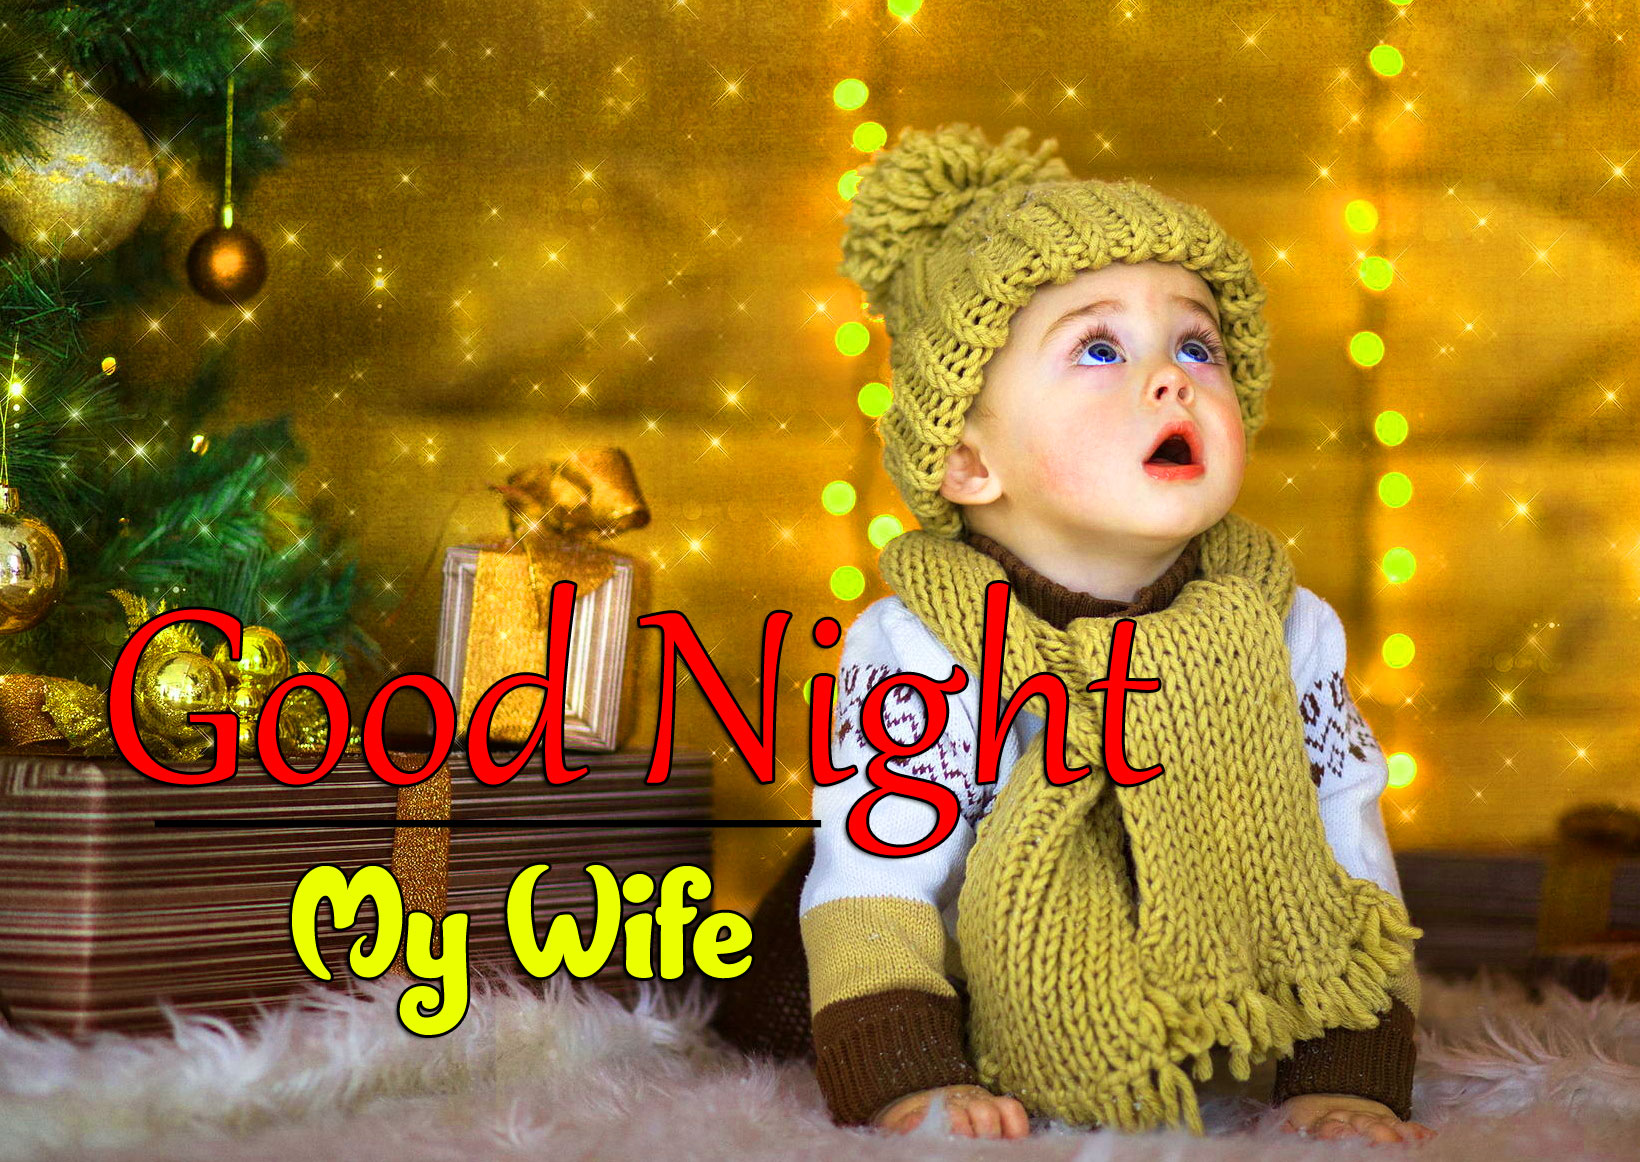 Good Night Wishes k Images Wallpaper Free